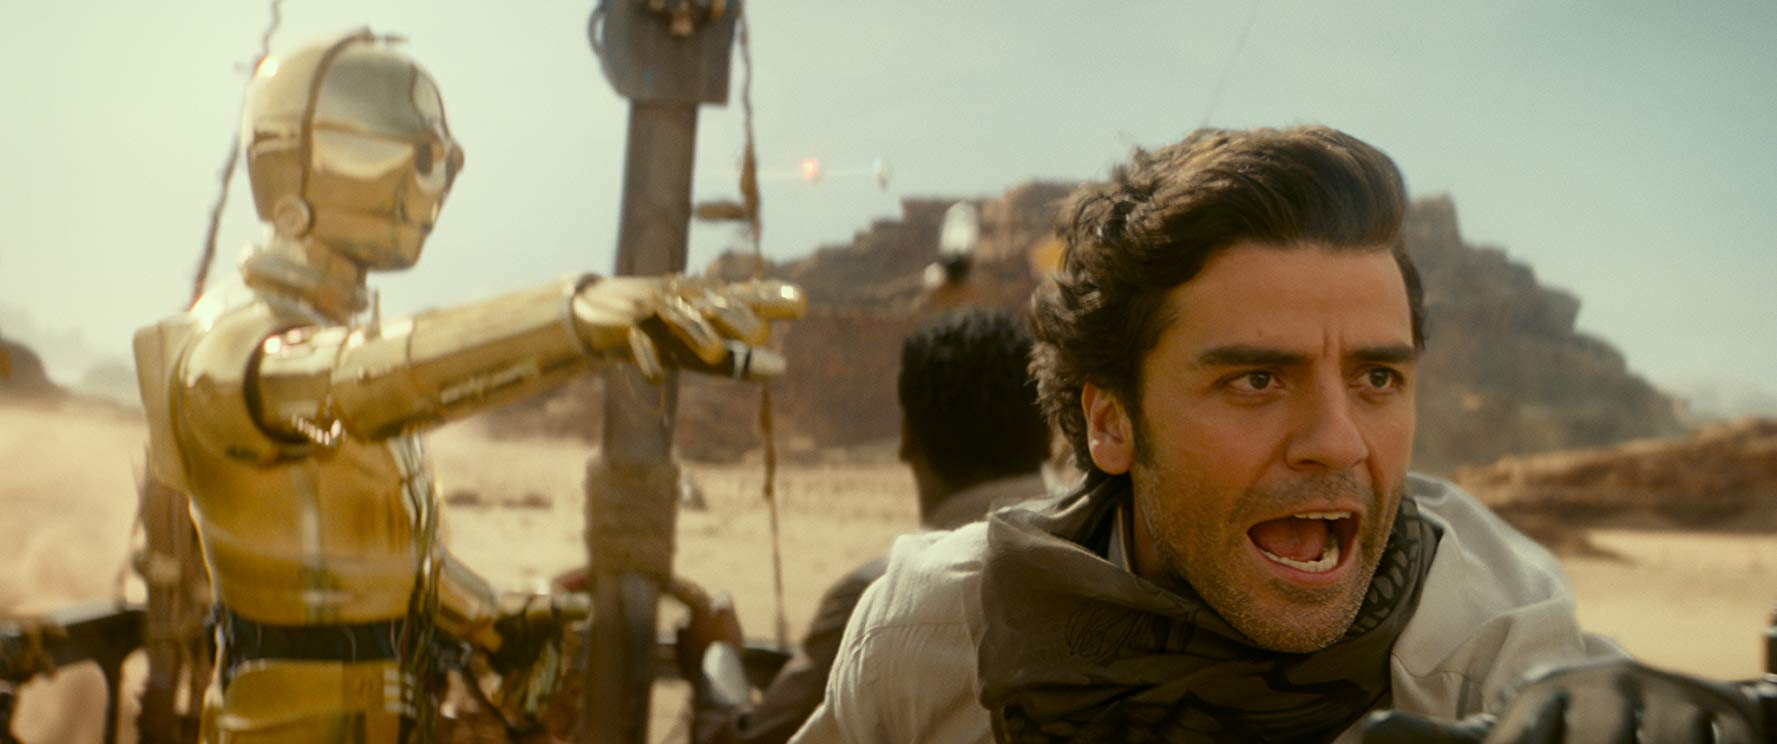 Poe Dameron on the desert planet Pasaana